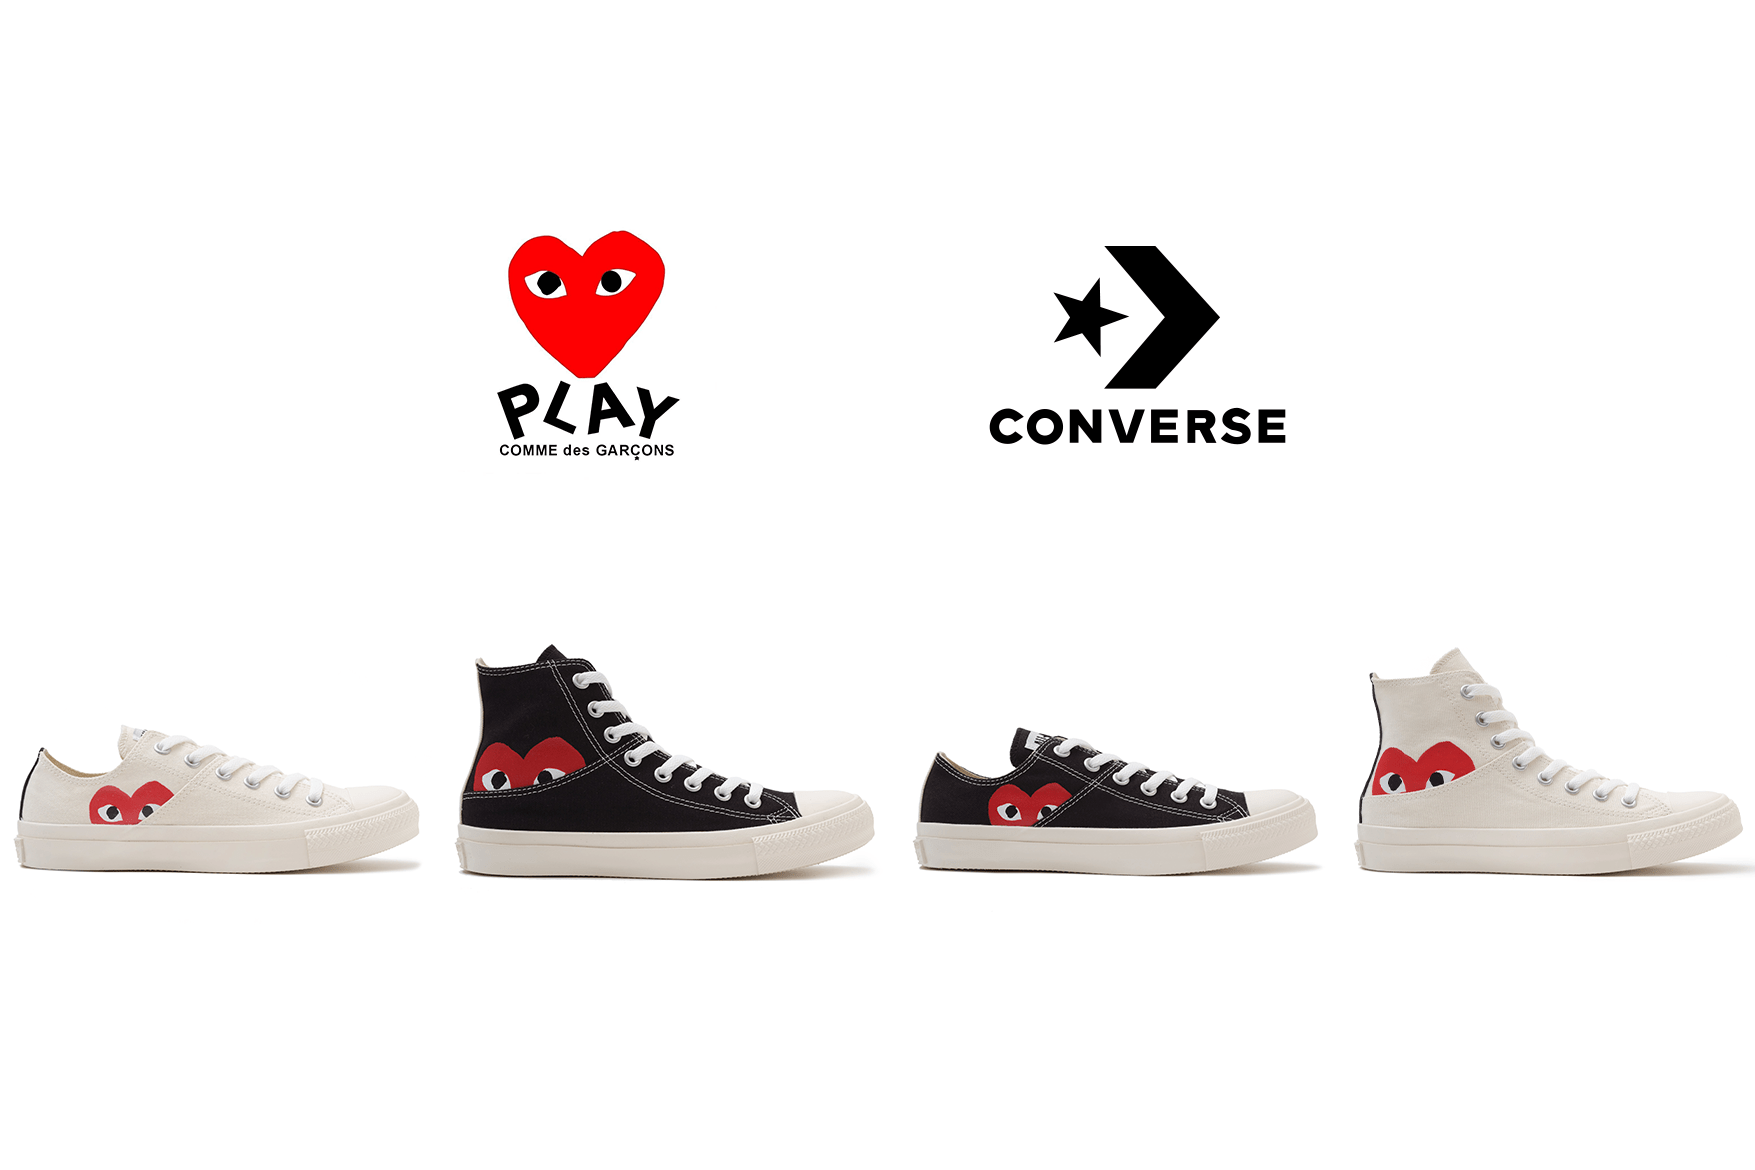 CDG PLAY X Converse new collection released